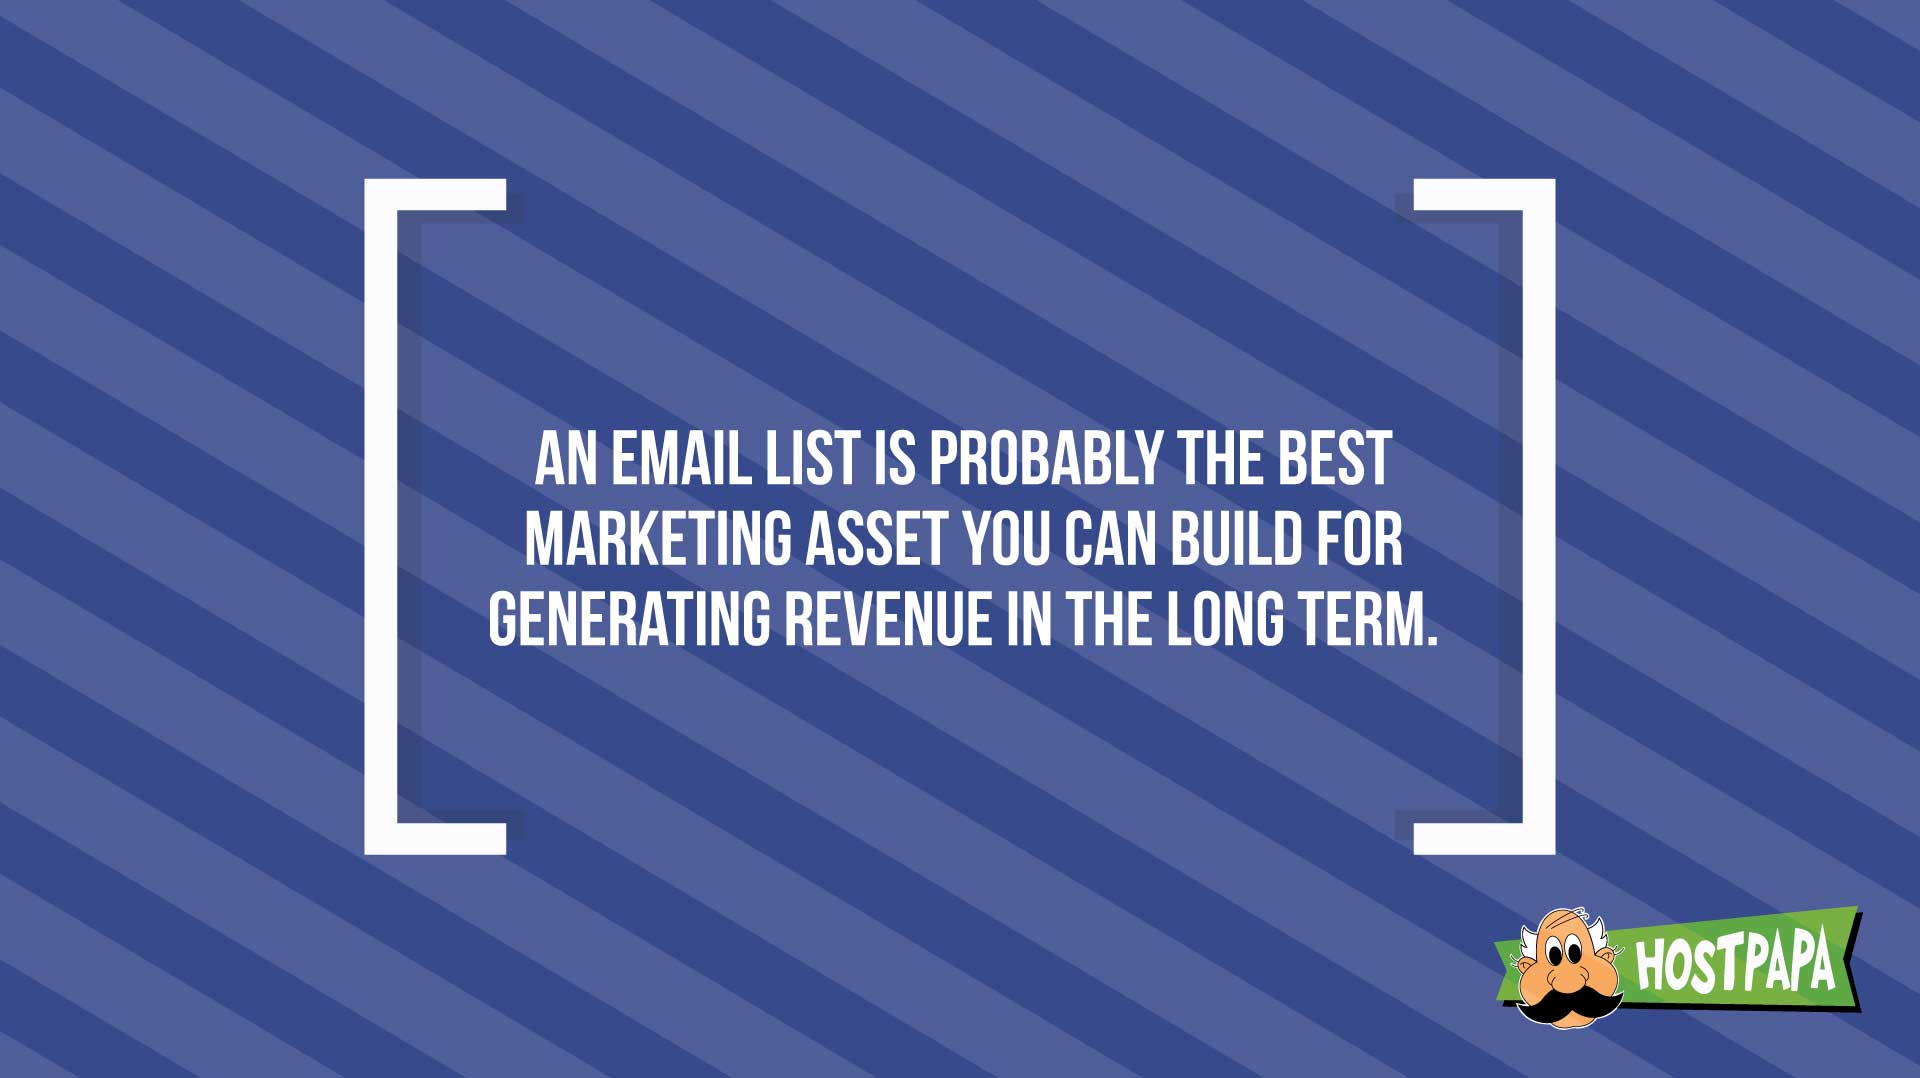 An email list is probably the best marketing asset you can build for generating revenue in the long term